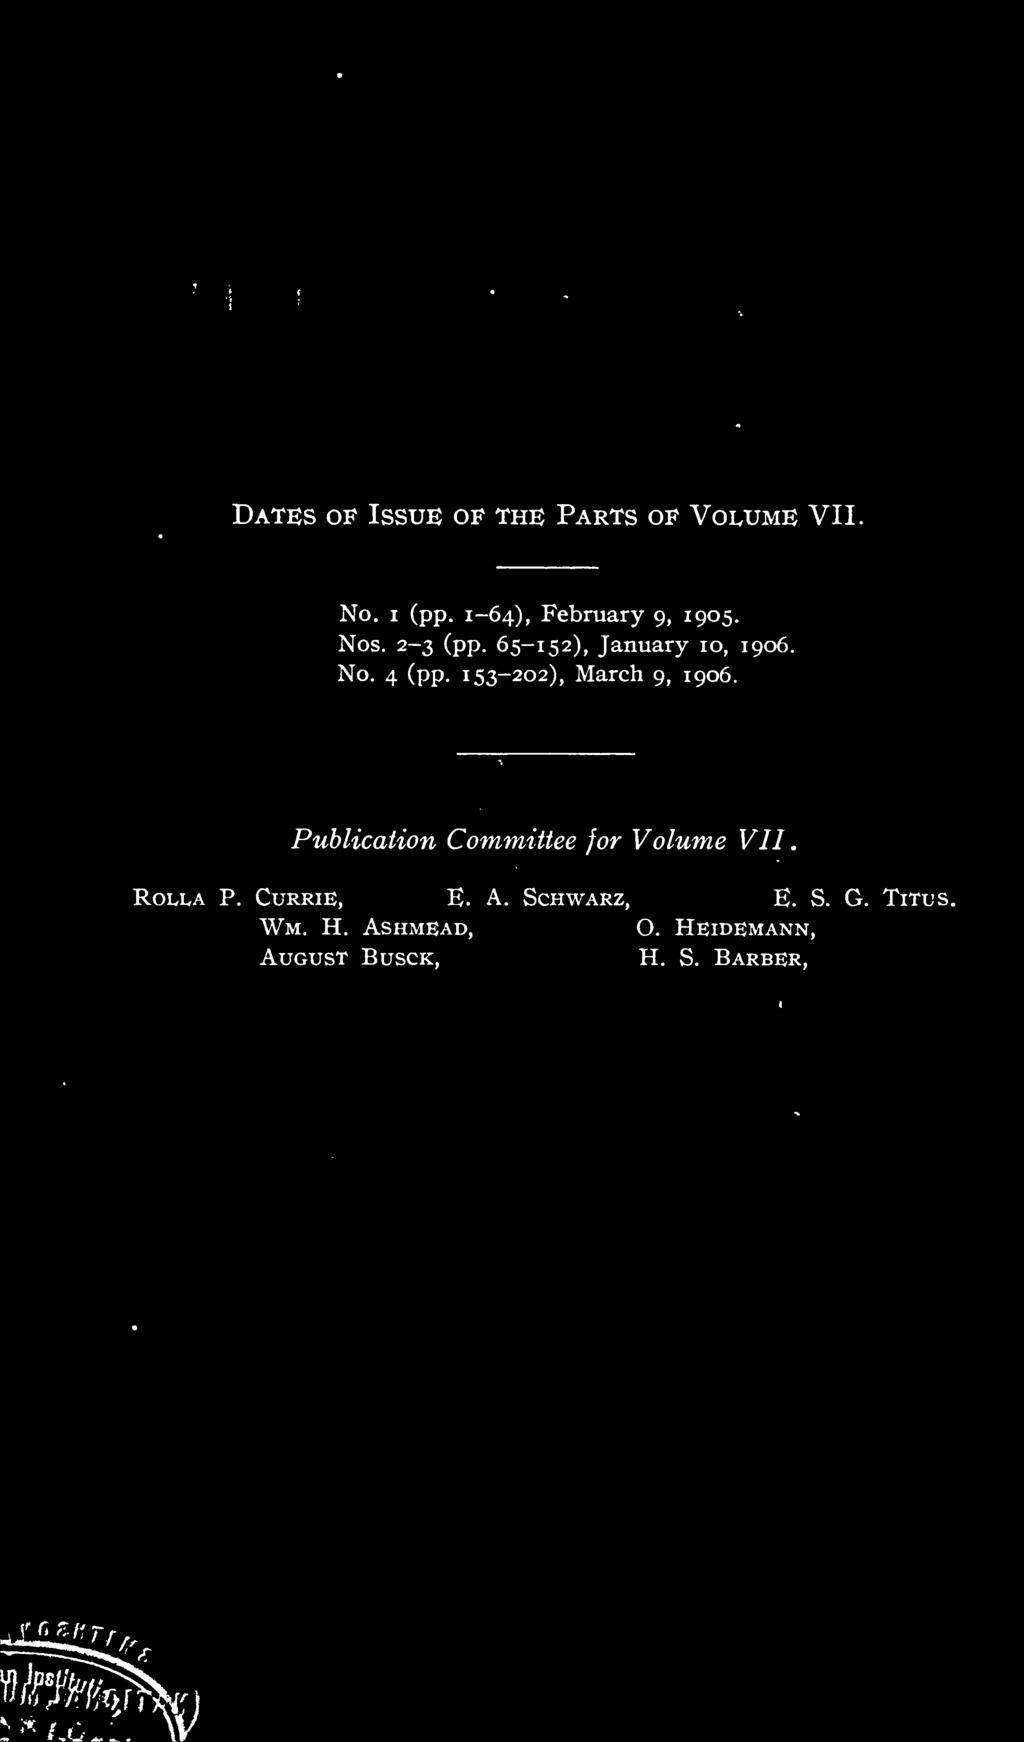 Publication Committee for Volume VII. ROLLA P.